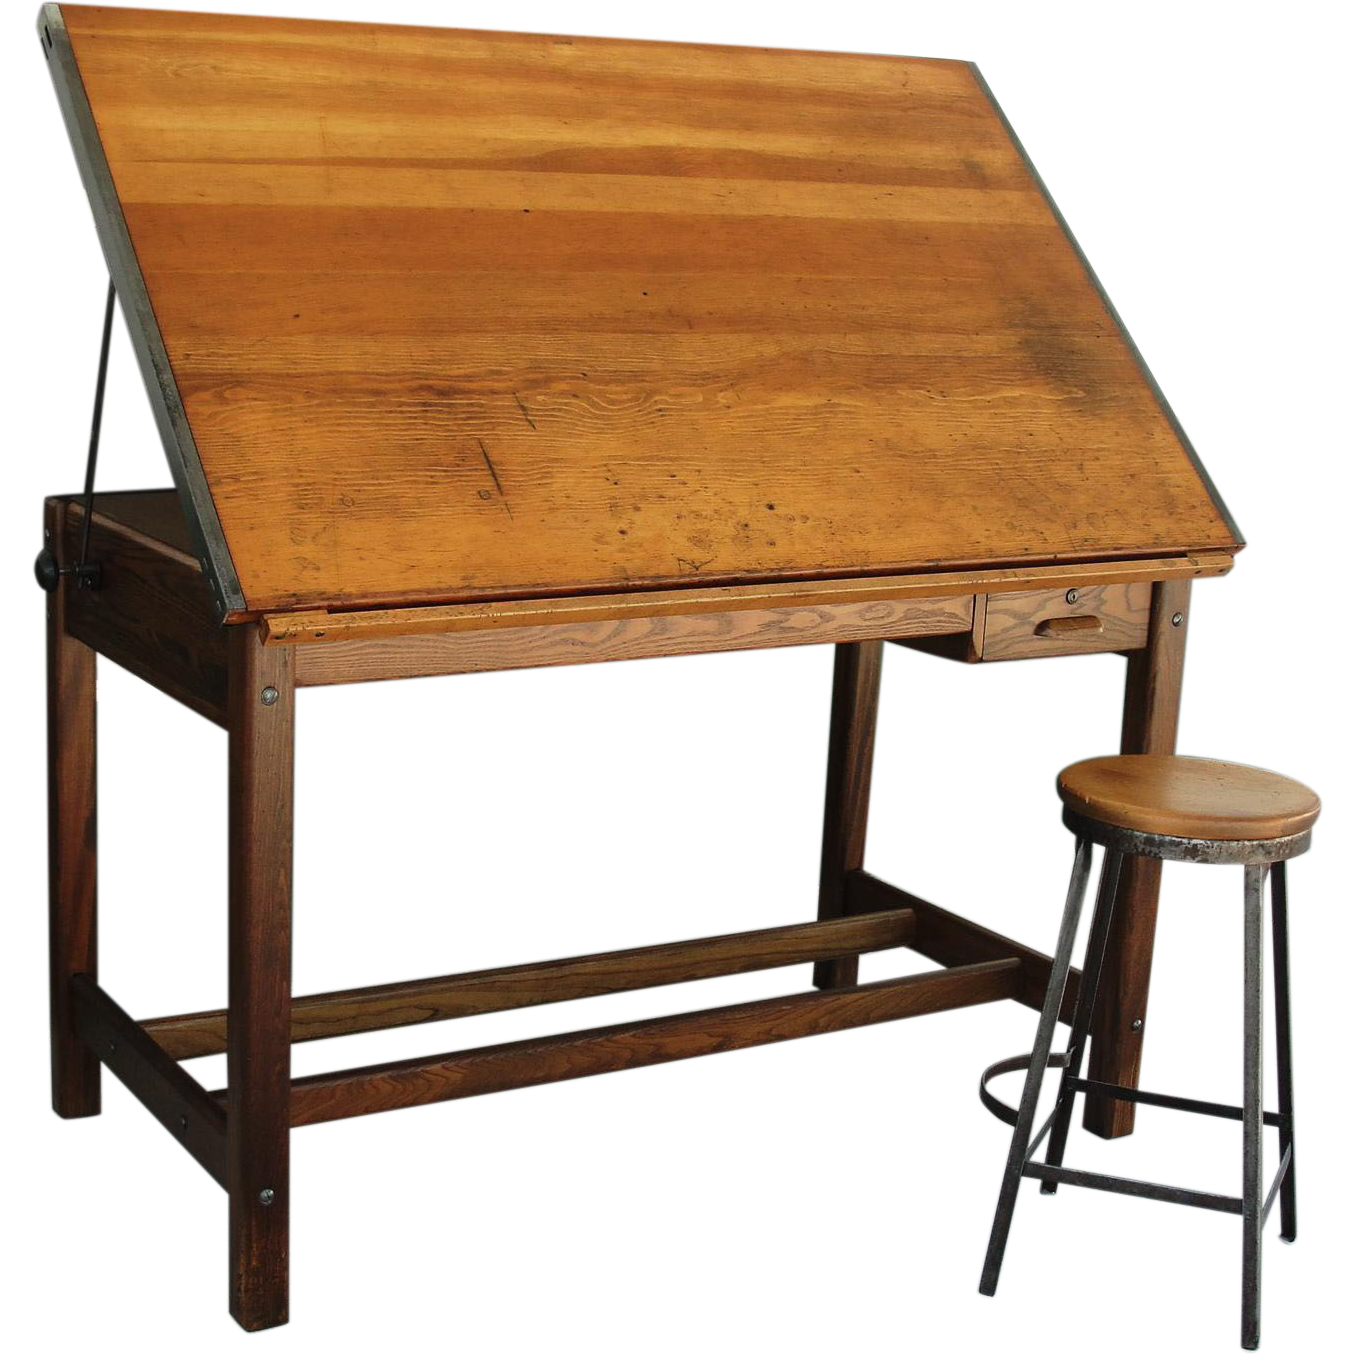 Vintage Hamilton Drafting Table Kitchen Island Bread Er Antiques Llc Ruby Lane